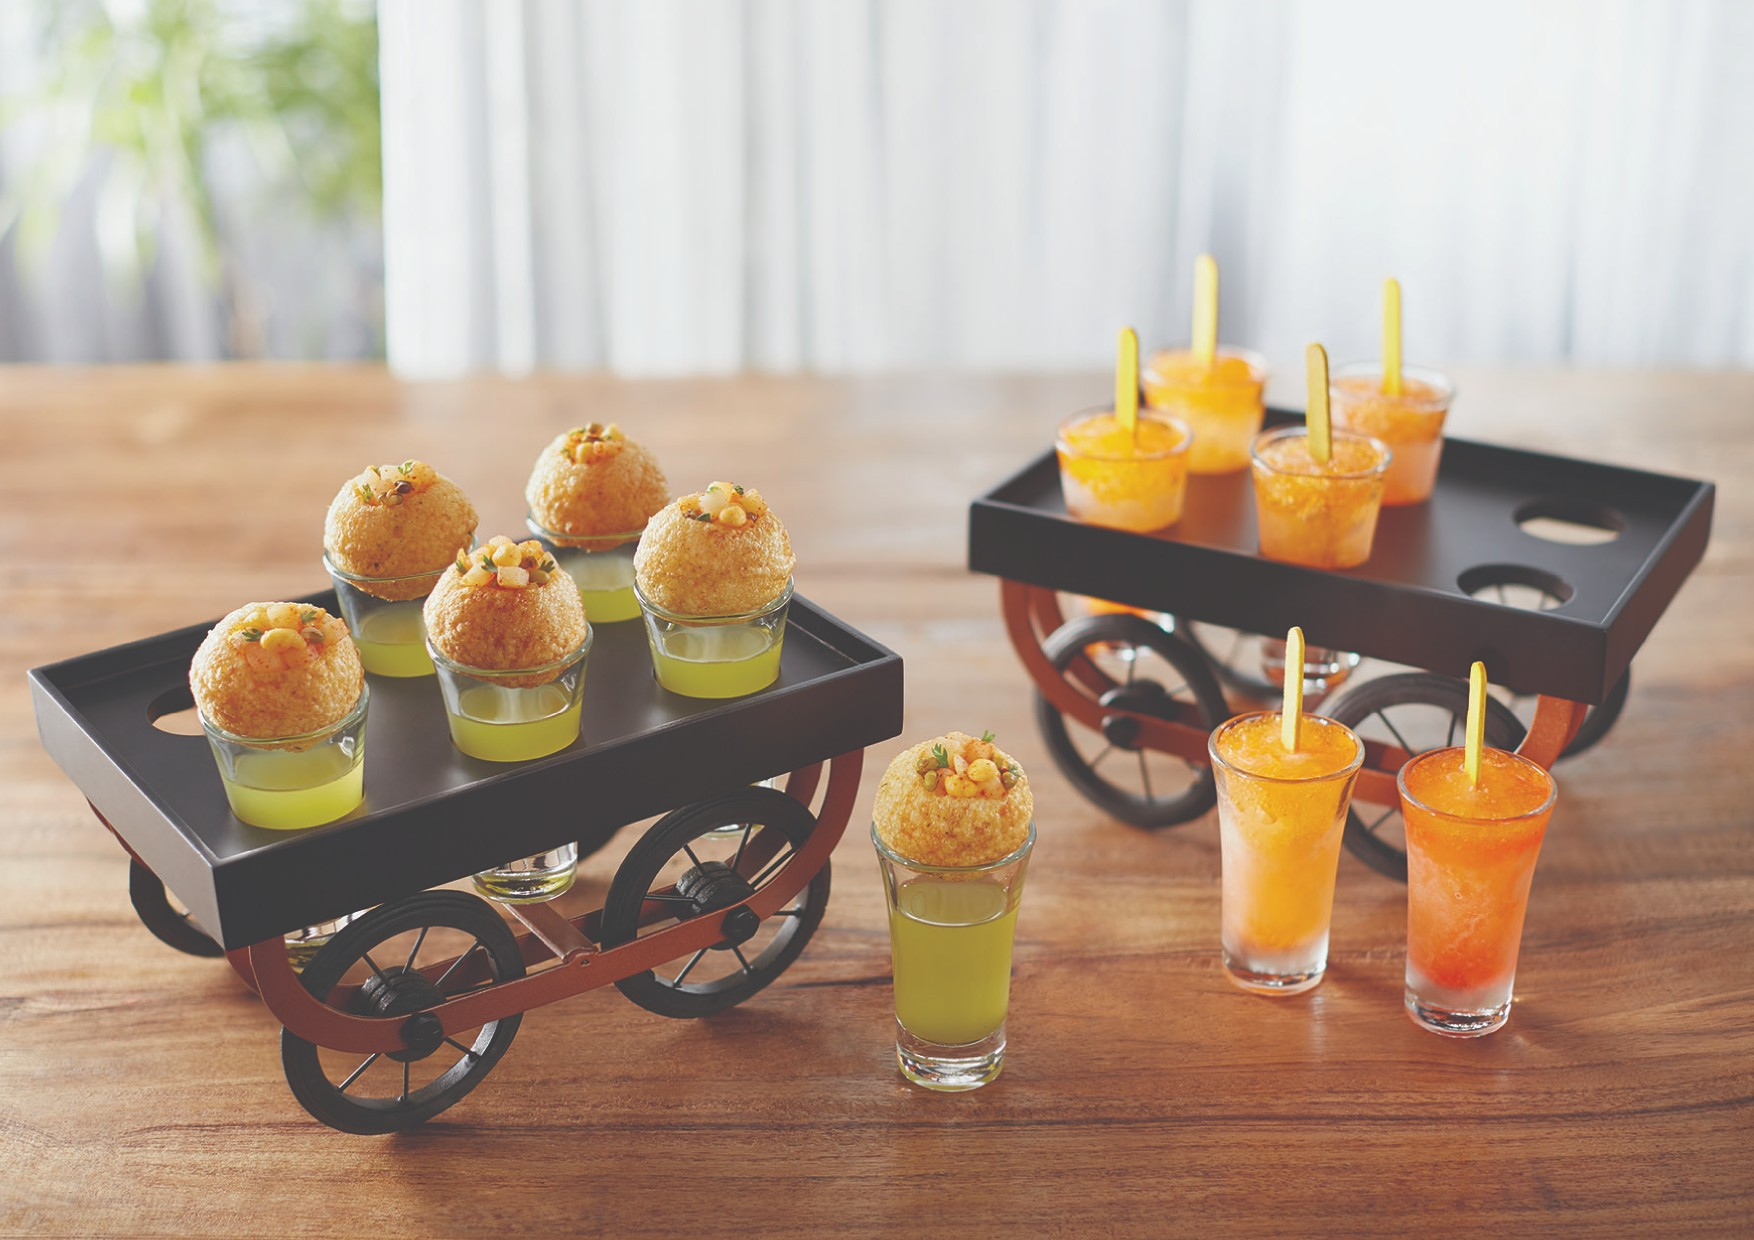 Songbird Panipuri/Popsicle Cart Serving Sets in Black Colour by Songbird